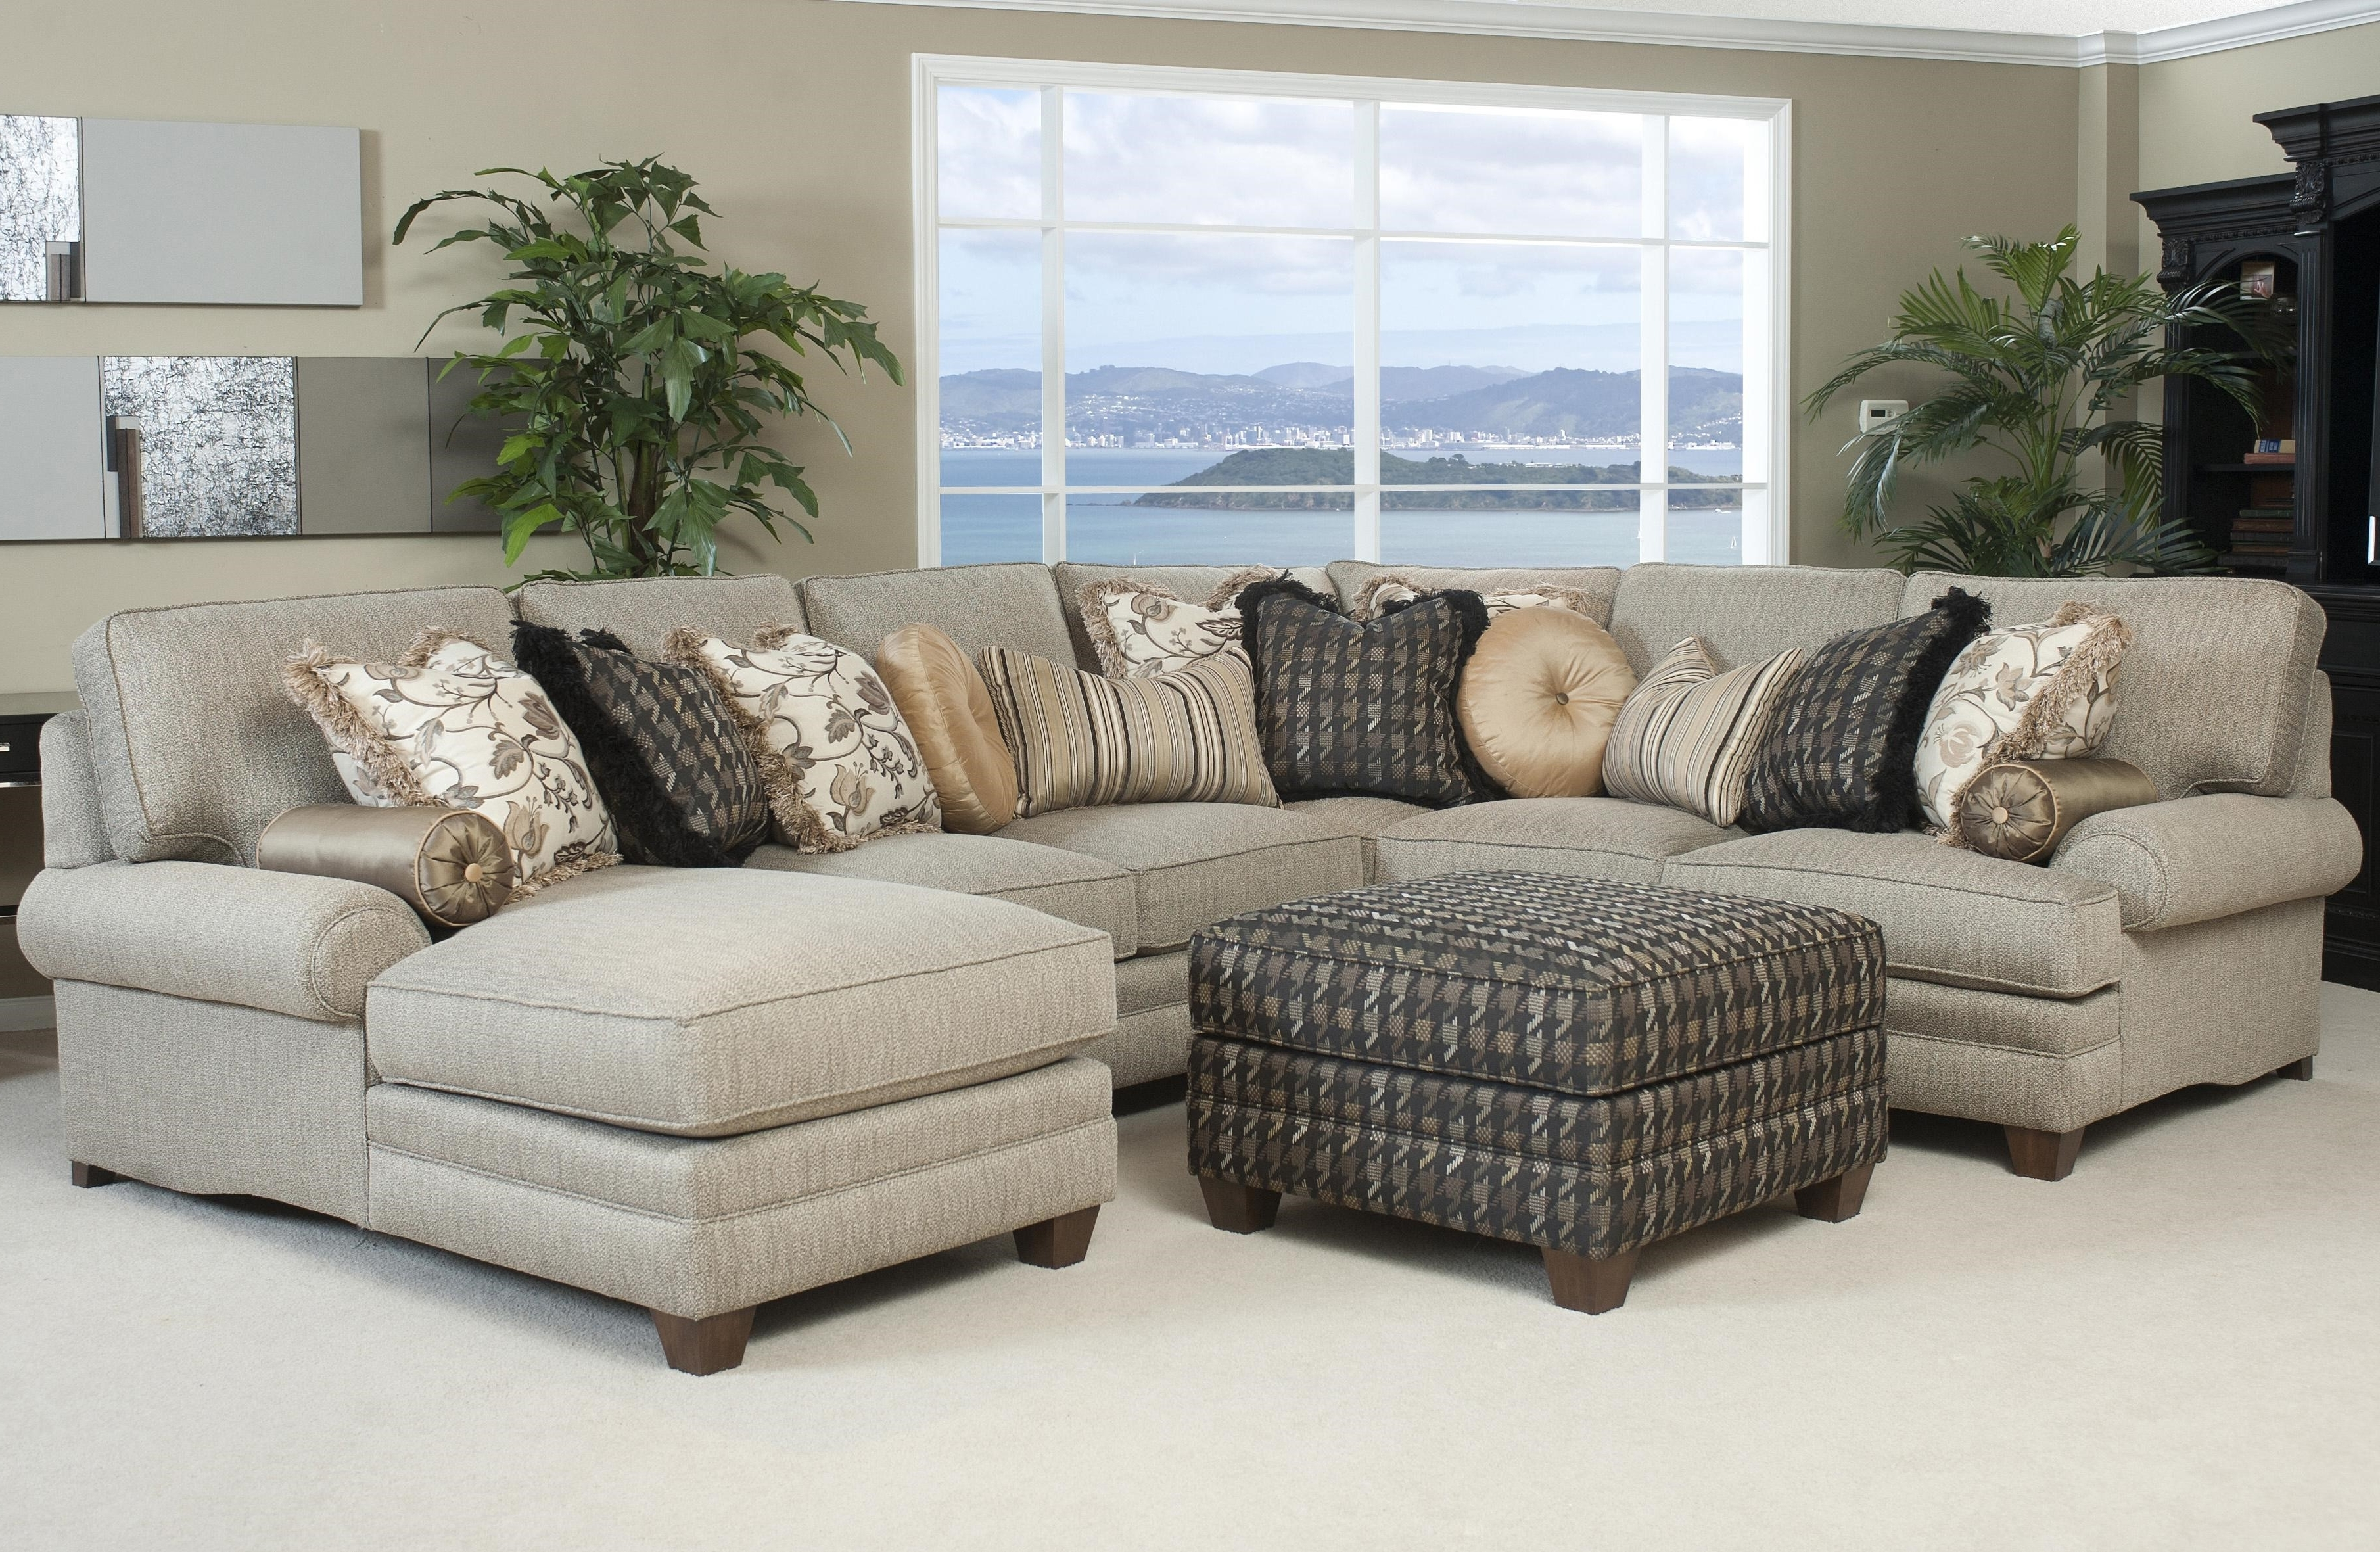 Kingston Sectional Sofas for Trendy Furniture : Unique Most Comfortable Sectional Couches 19 Sofa